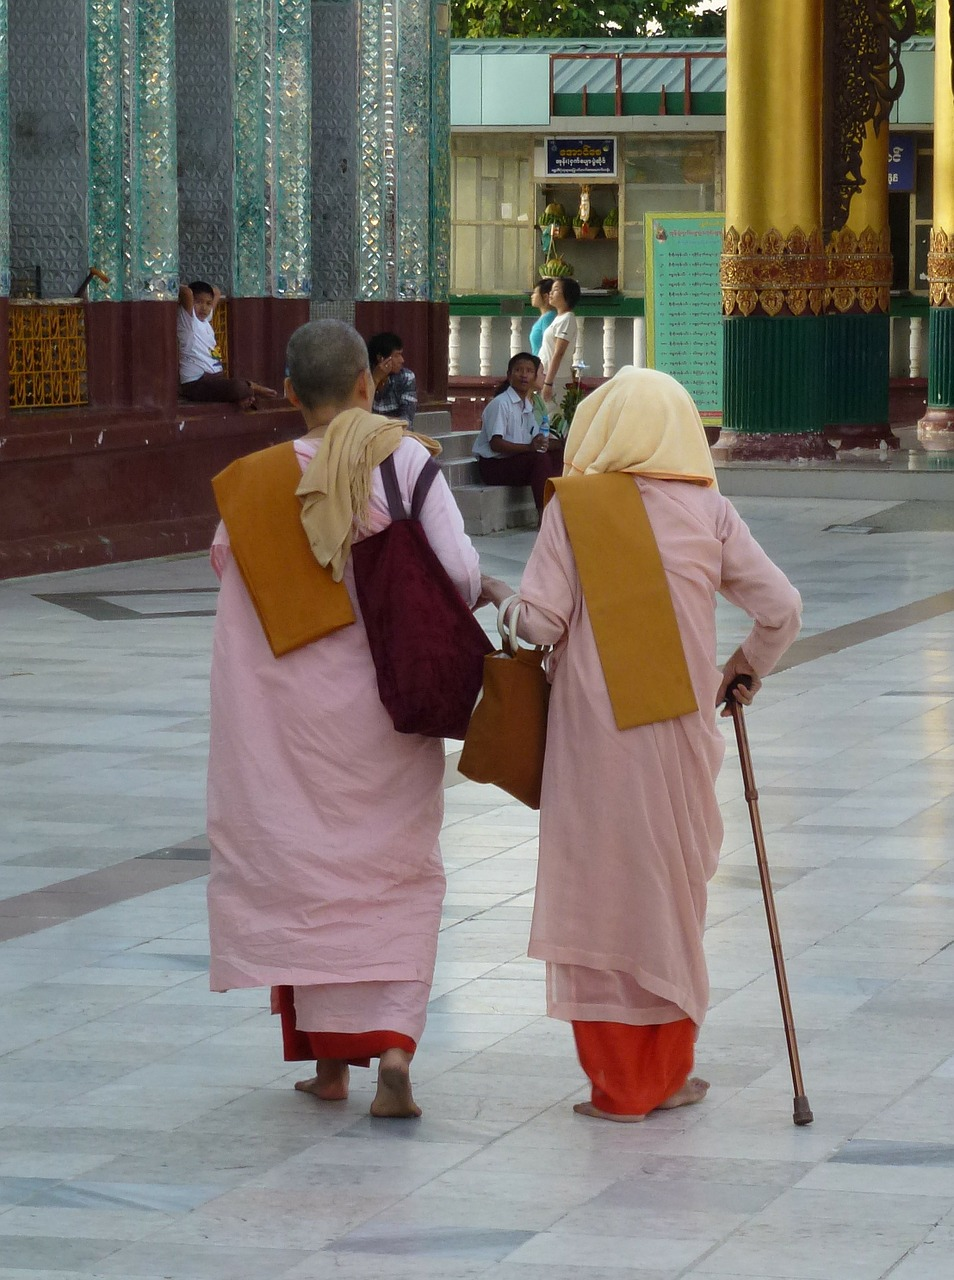 myanmar,nuns,buddhist,monk,asia,pagoda,religion,worshipers,free pictures, free photos, free images, royalty free, free illustrations